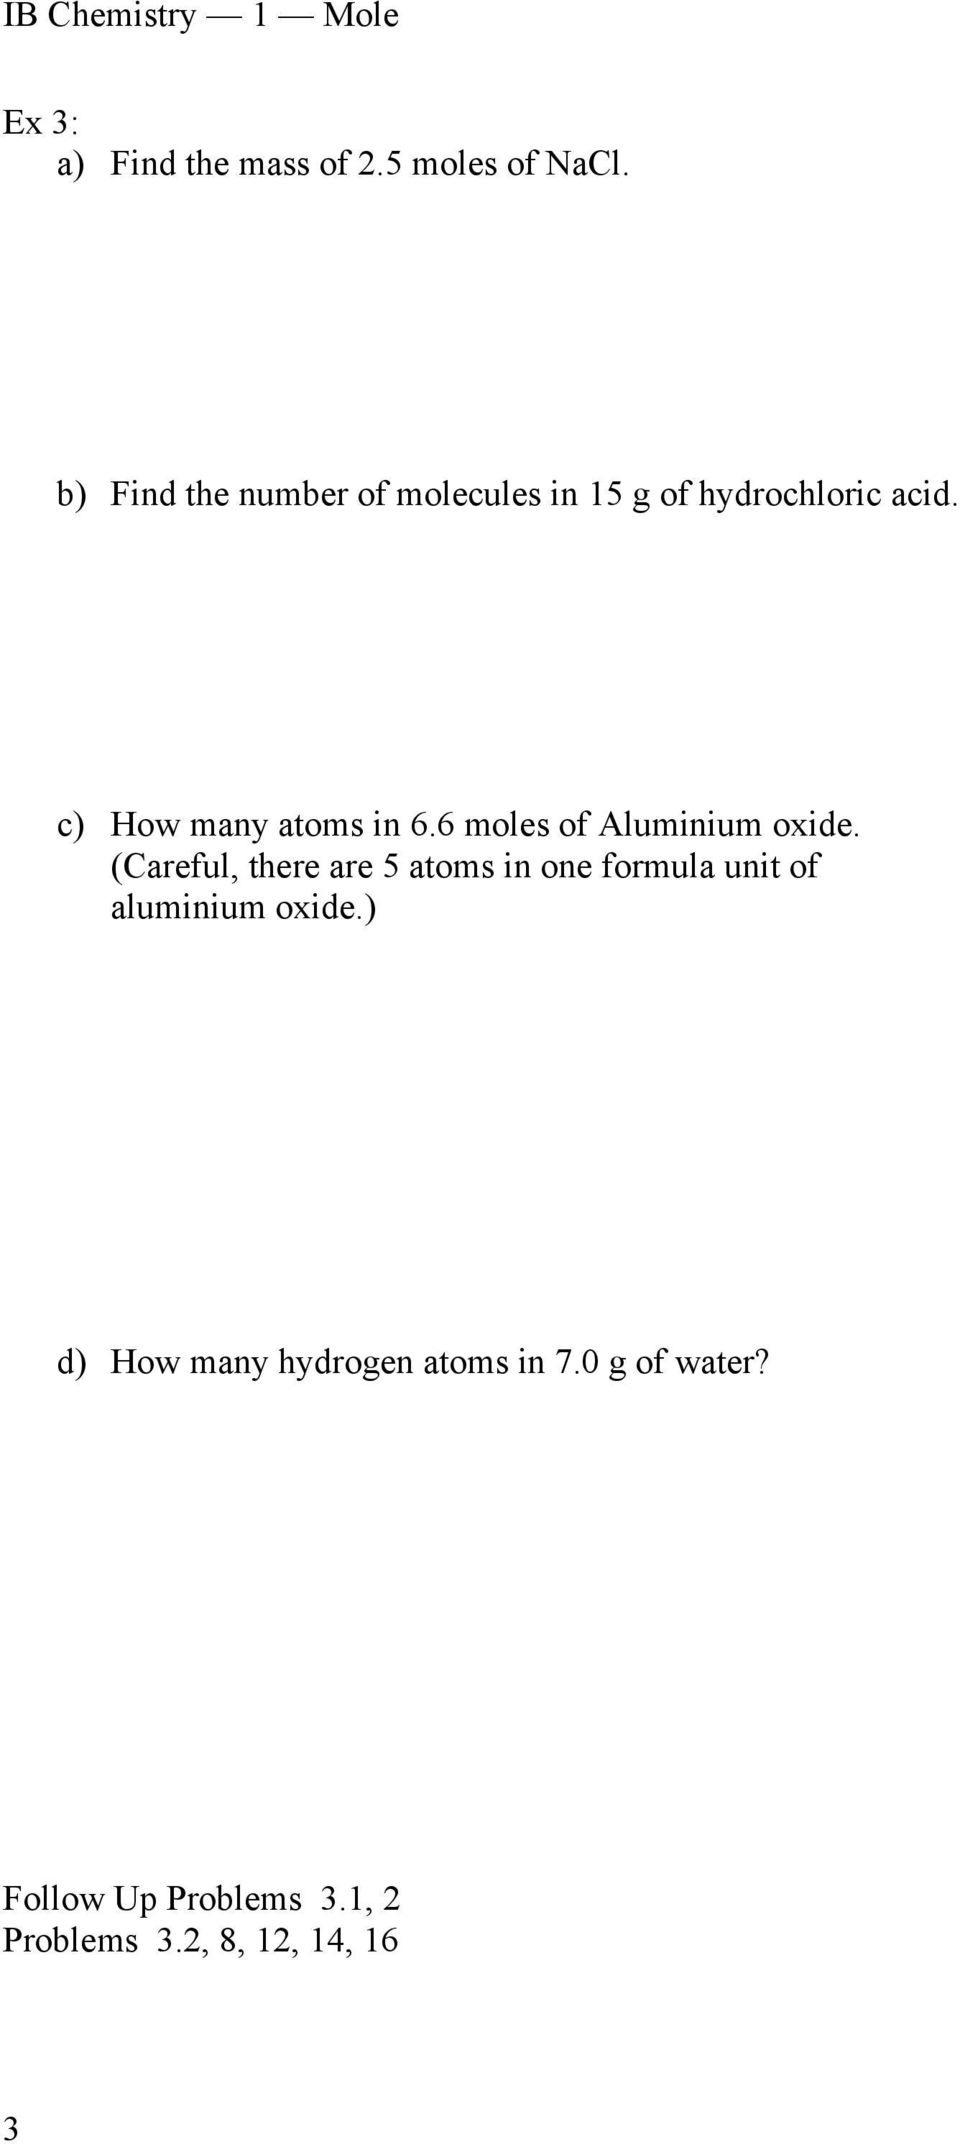 c) How many atoms in 6.6 moles of Aluminium oxide.